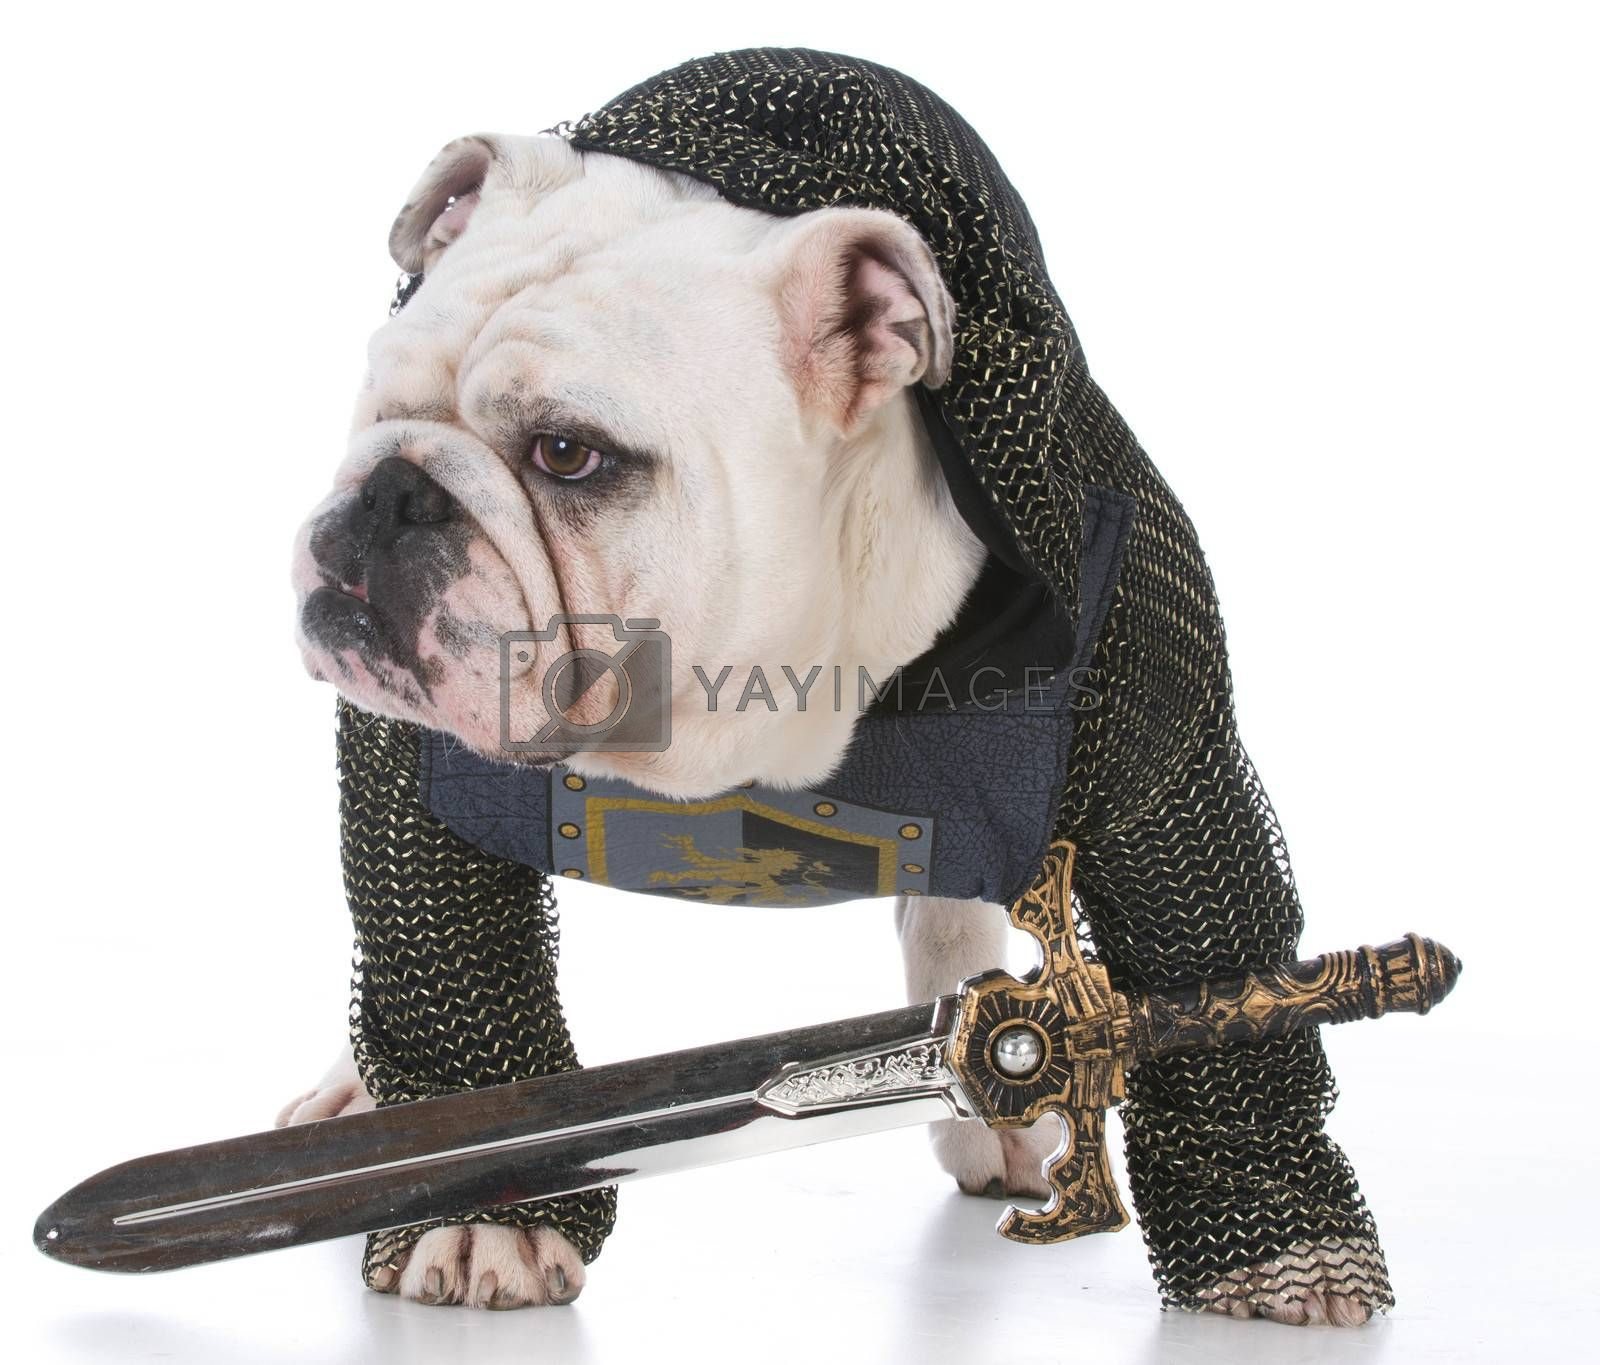 bulldog dressed up like a knight on white background